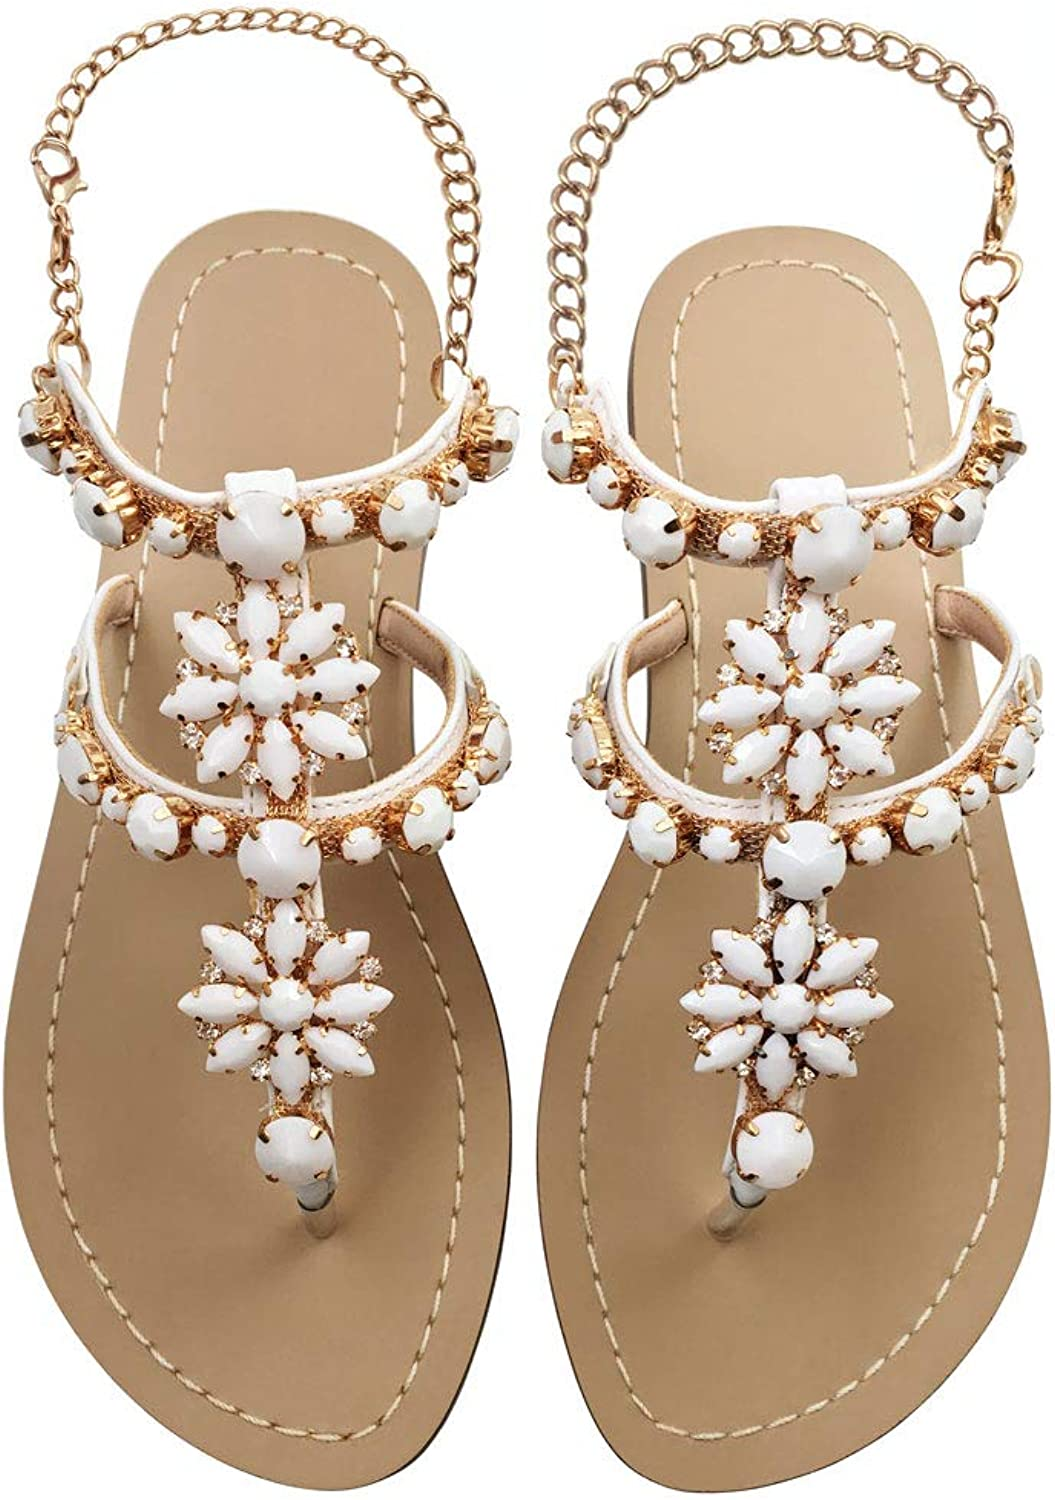 JF shoes Women's Crystal with Rhinestone Bohemia Flip Flops Summer Beach T-Strap Flat Sandals Size 12 White